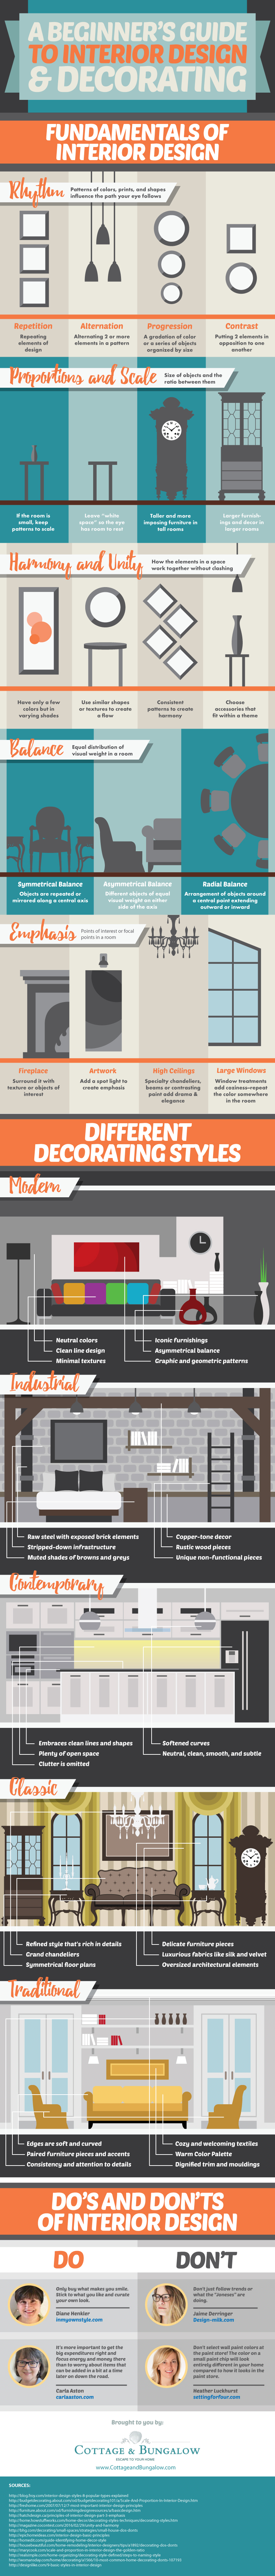 A Beginner's Guide to Interior Design & Decorating